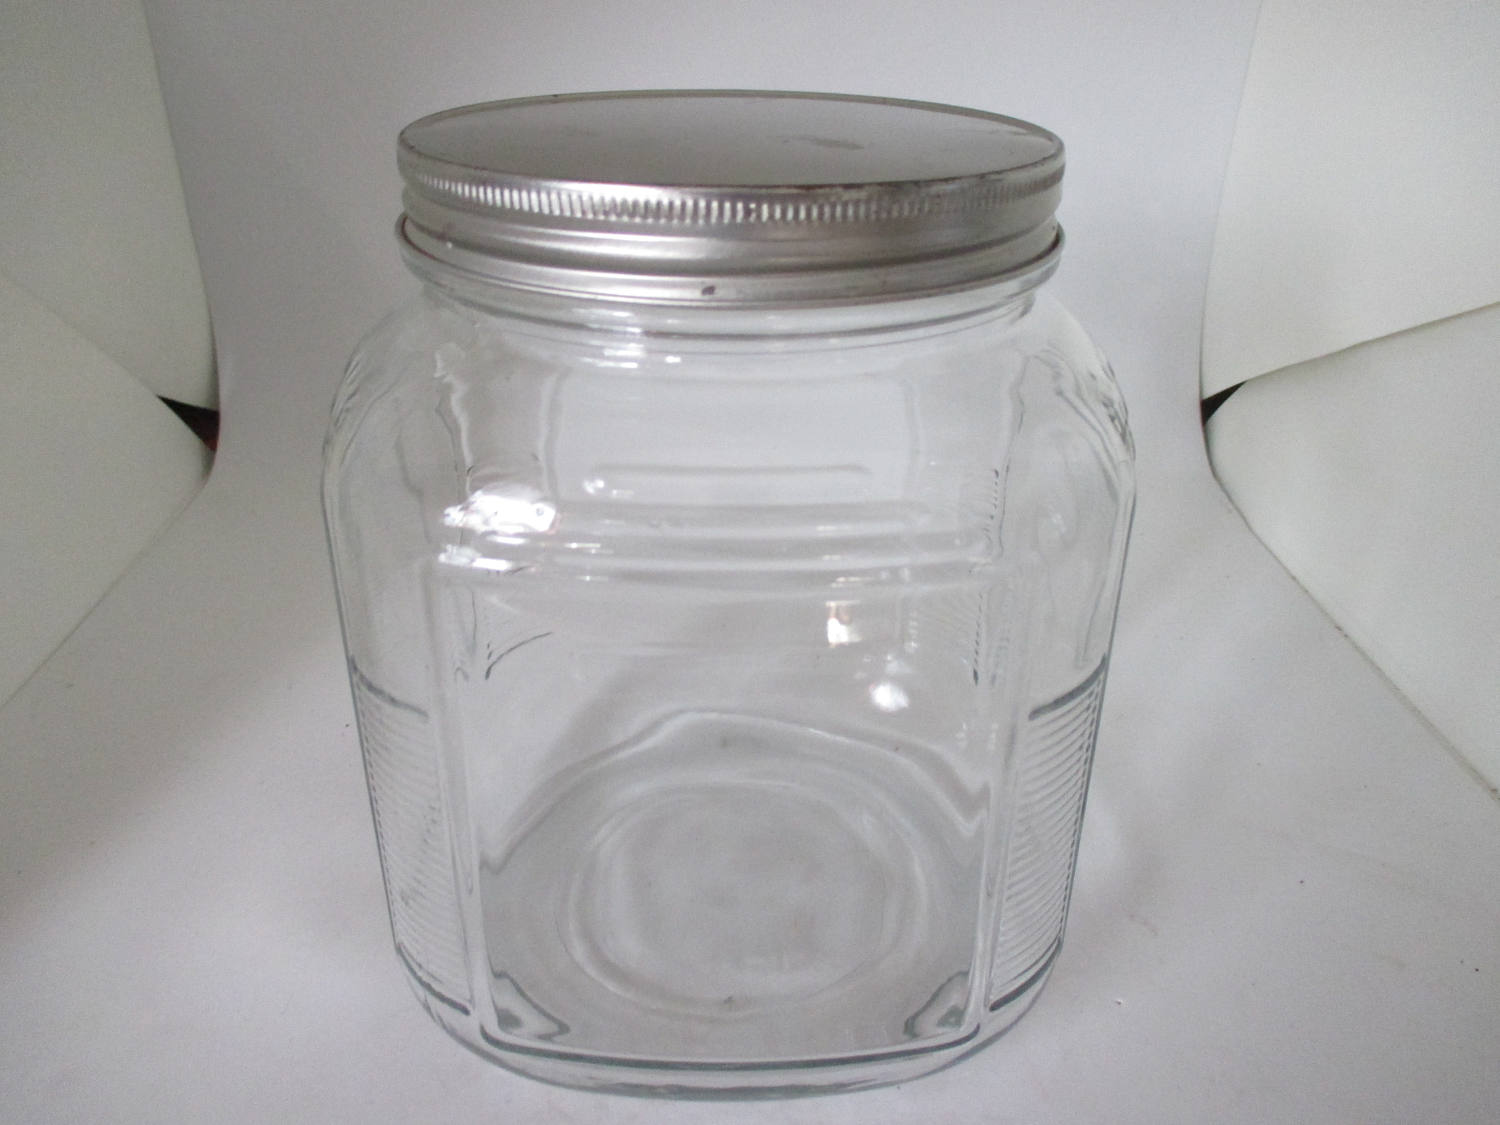 Vintage Kitchen Storage Canister Jar ribbed glass metal lid marbles buttons  cookies dog treats collectibles display apothecary tv movie prop